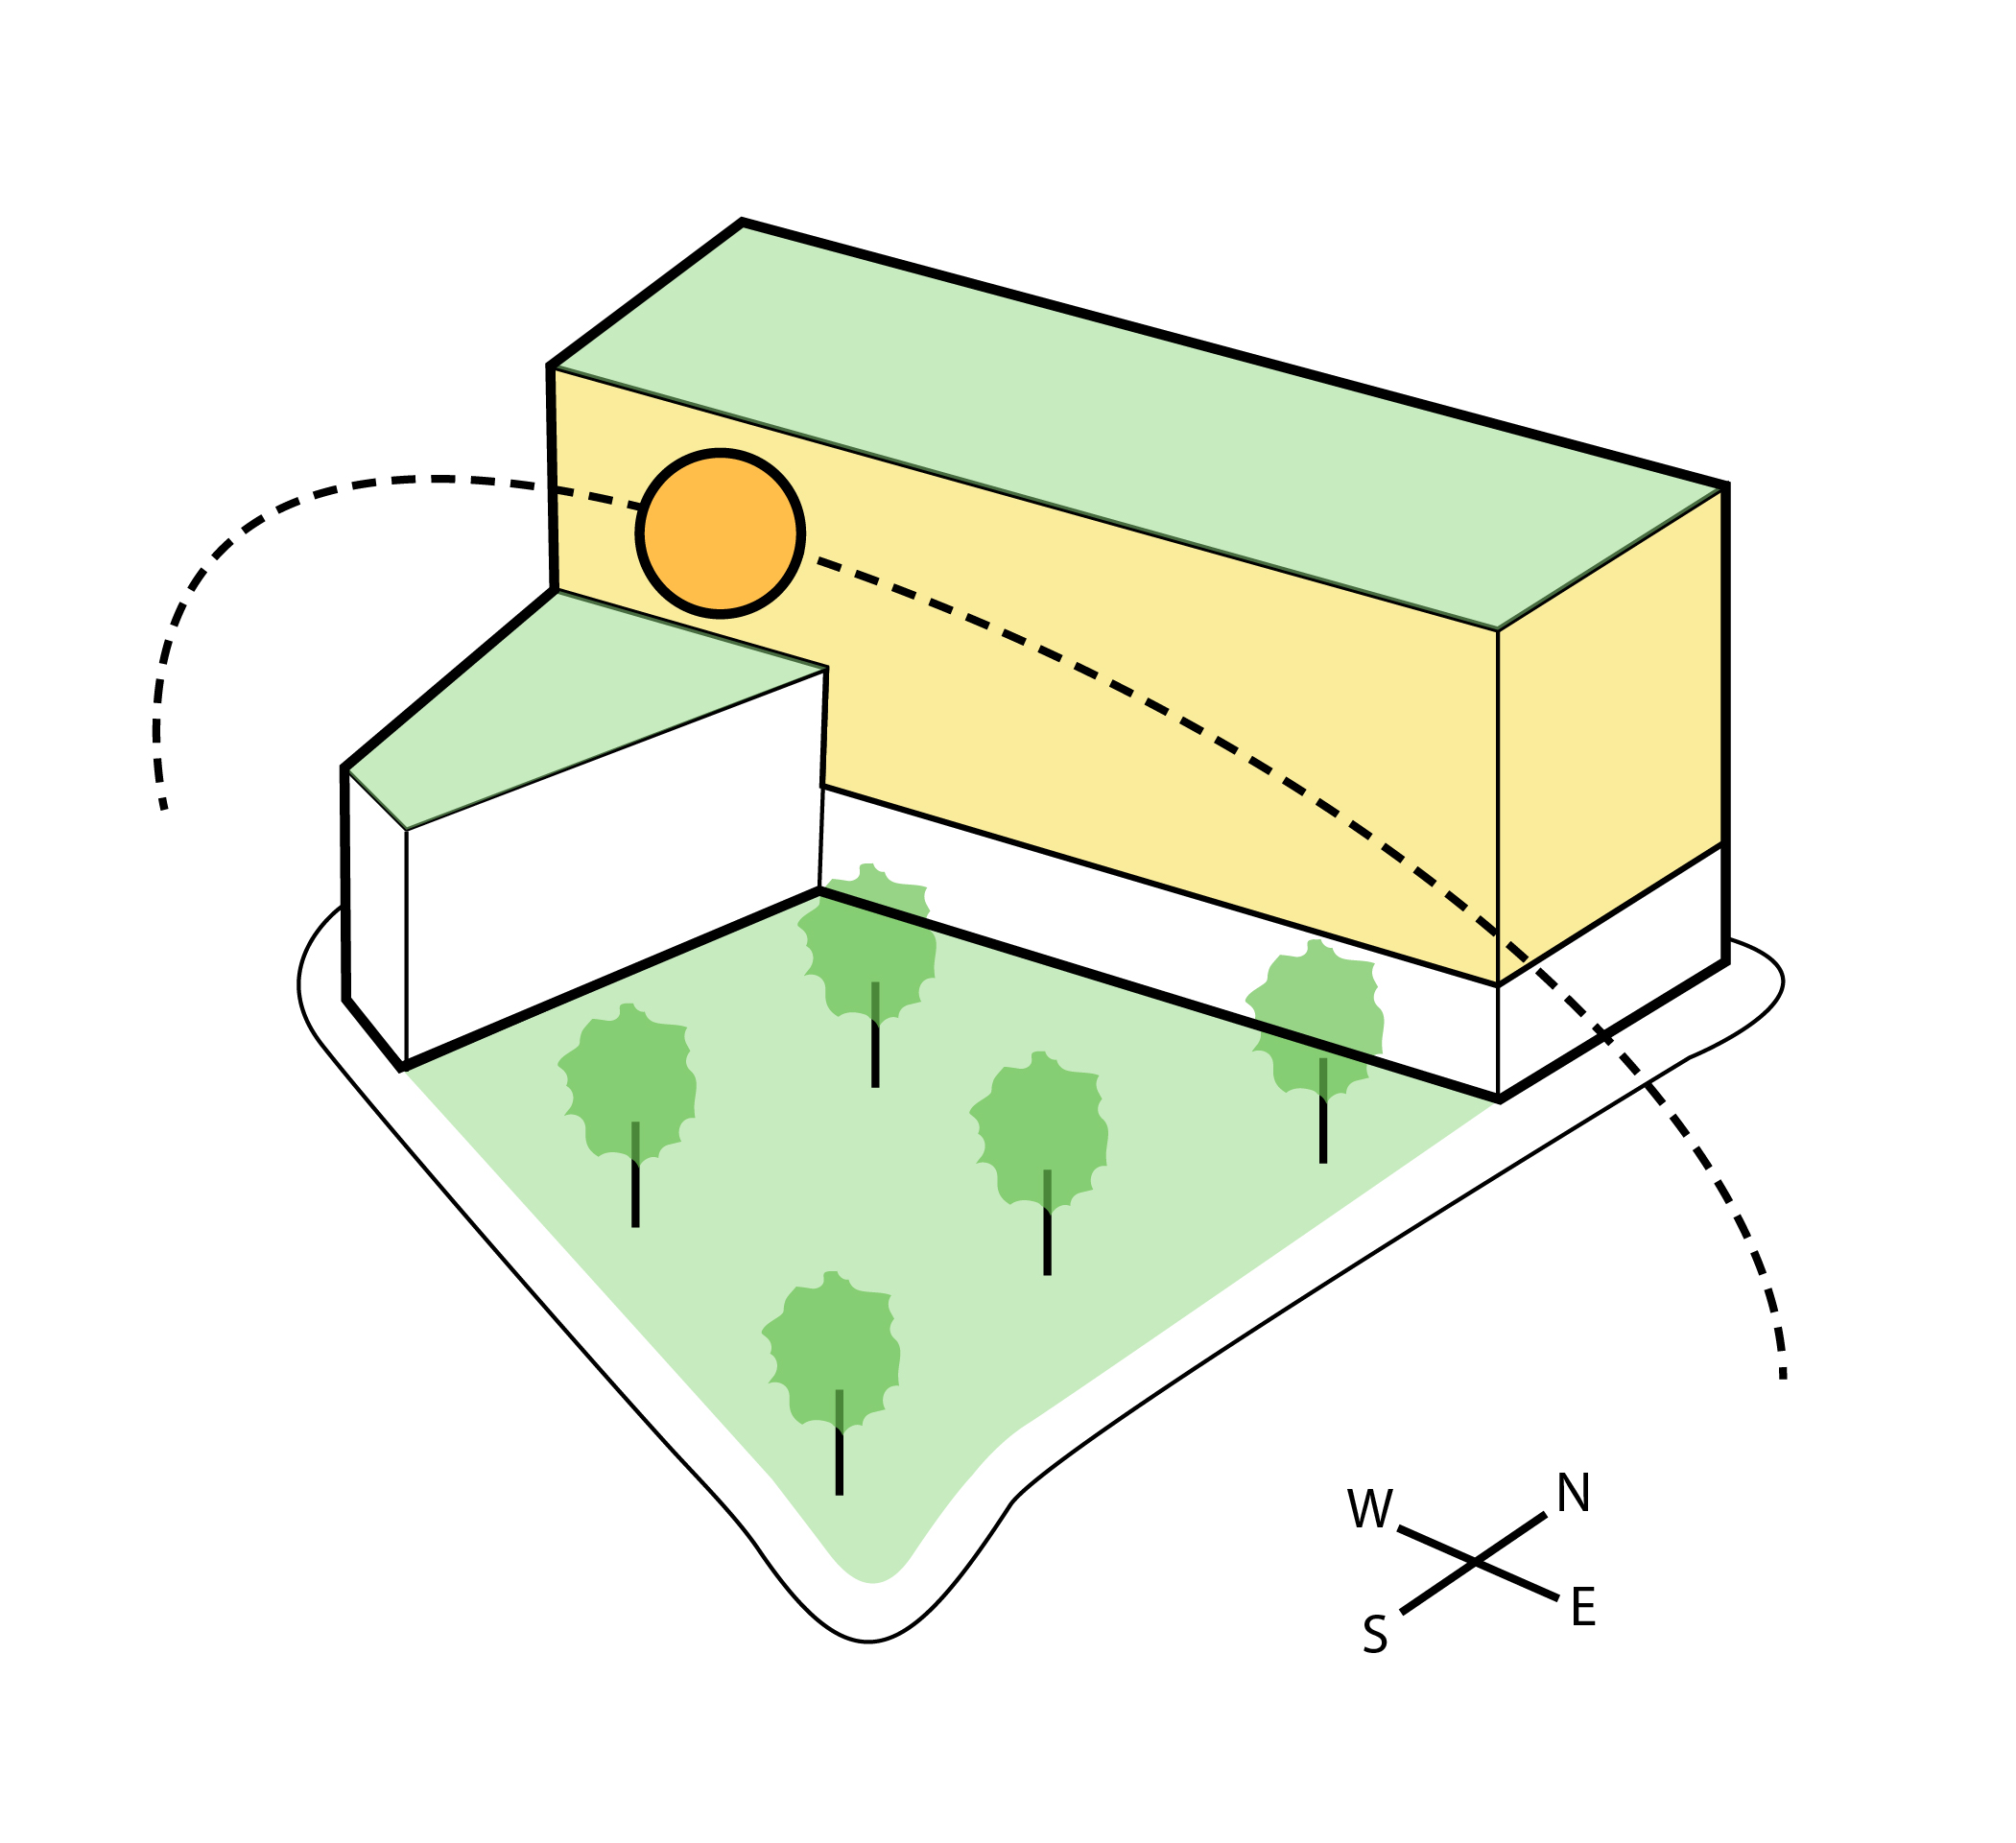 - Solar optimized facade along the south and east exposure. Green roofs lower thermal mass of the building as well as provide outdoor amenity spaces.